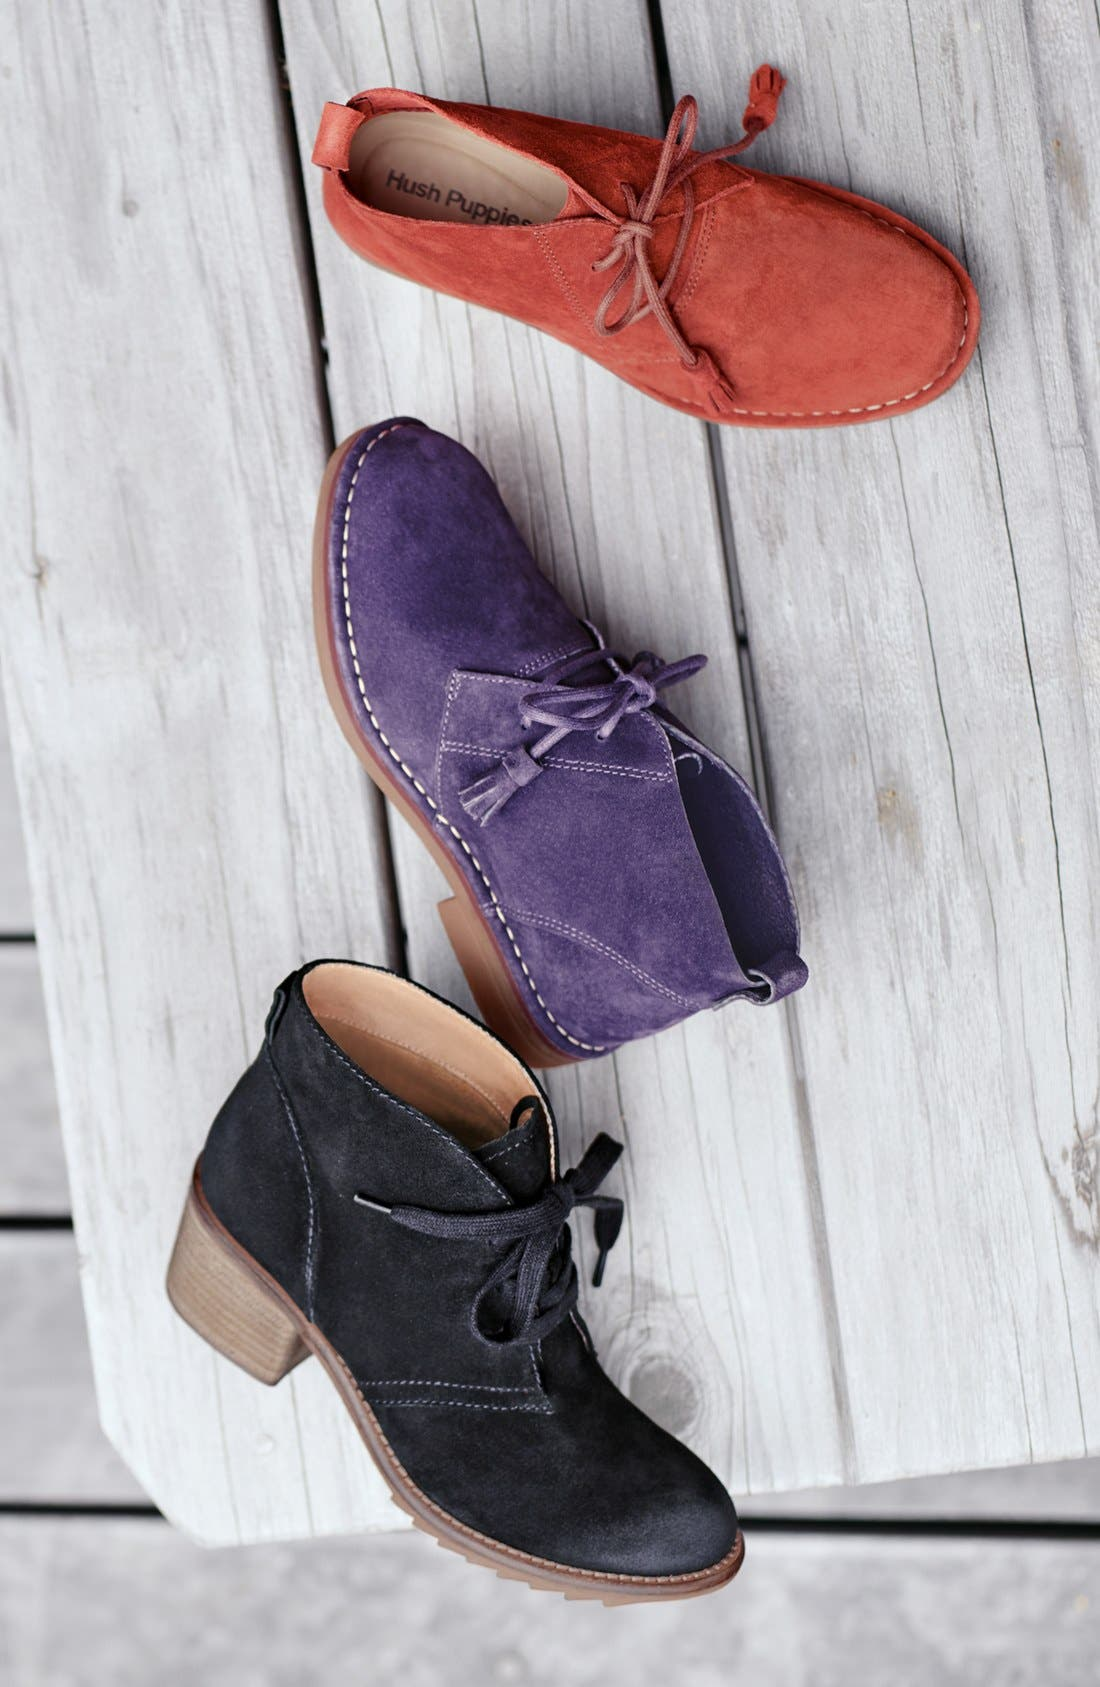 HUSH PUPPIES<SUP>®</SUP>, Cyra Catelyn Chukka Boot, Alternate thumbnail 5, color, BLACK SUEDE